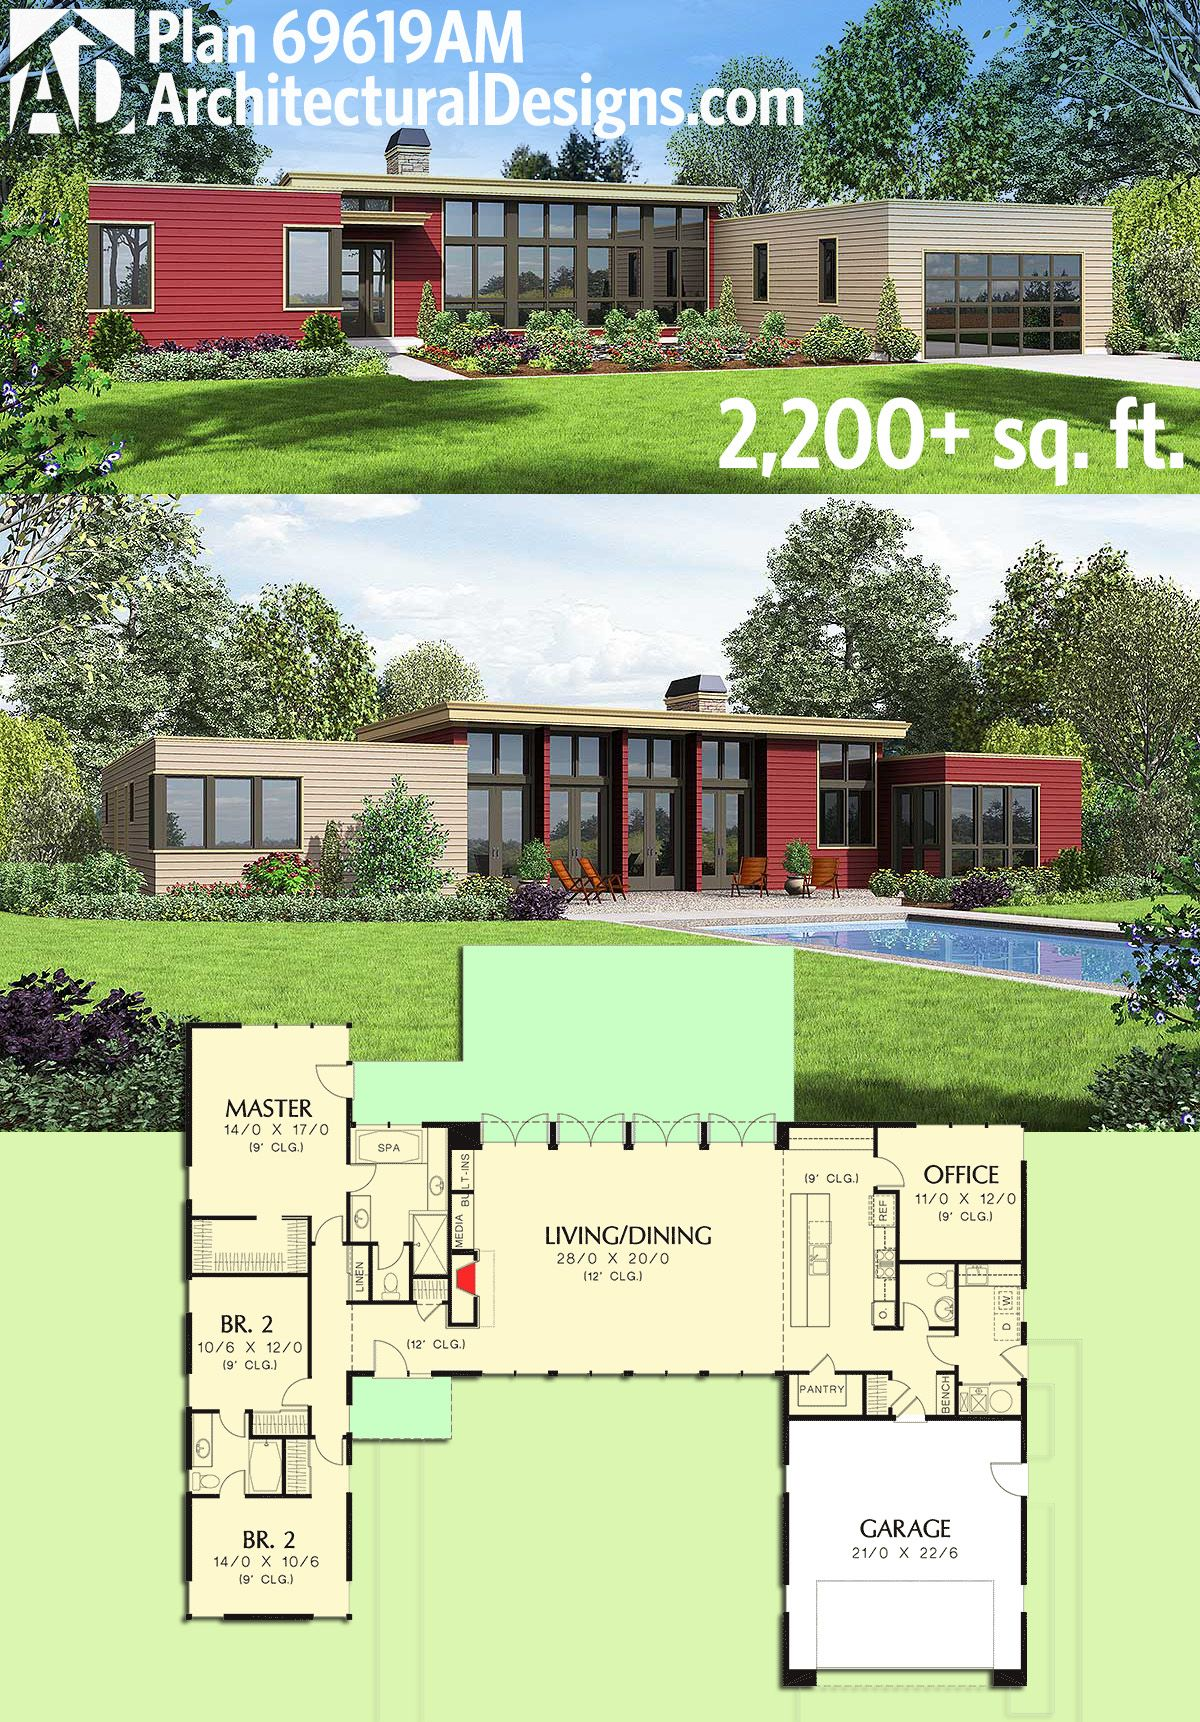 Architectural Designs Modern House Plan 69619AM Gives You Over 2,200 Square  Feet Of Living On One